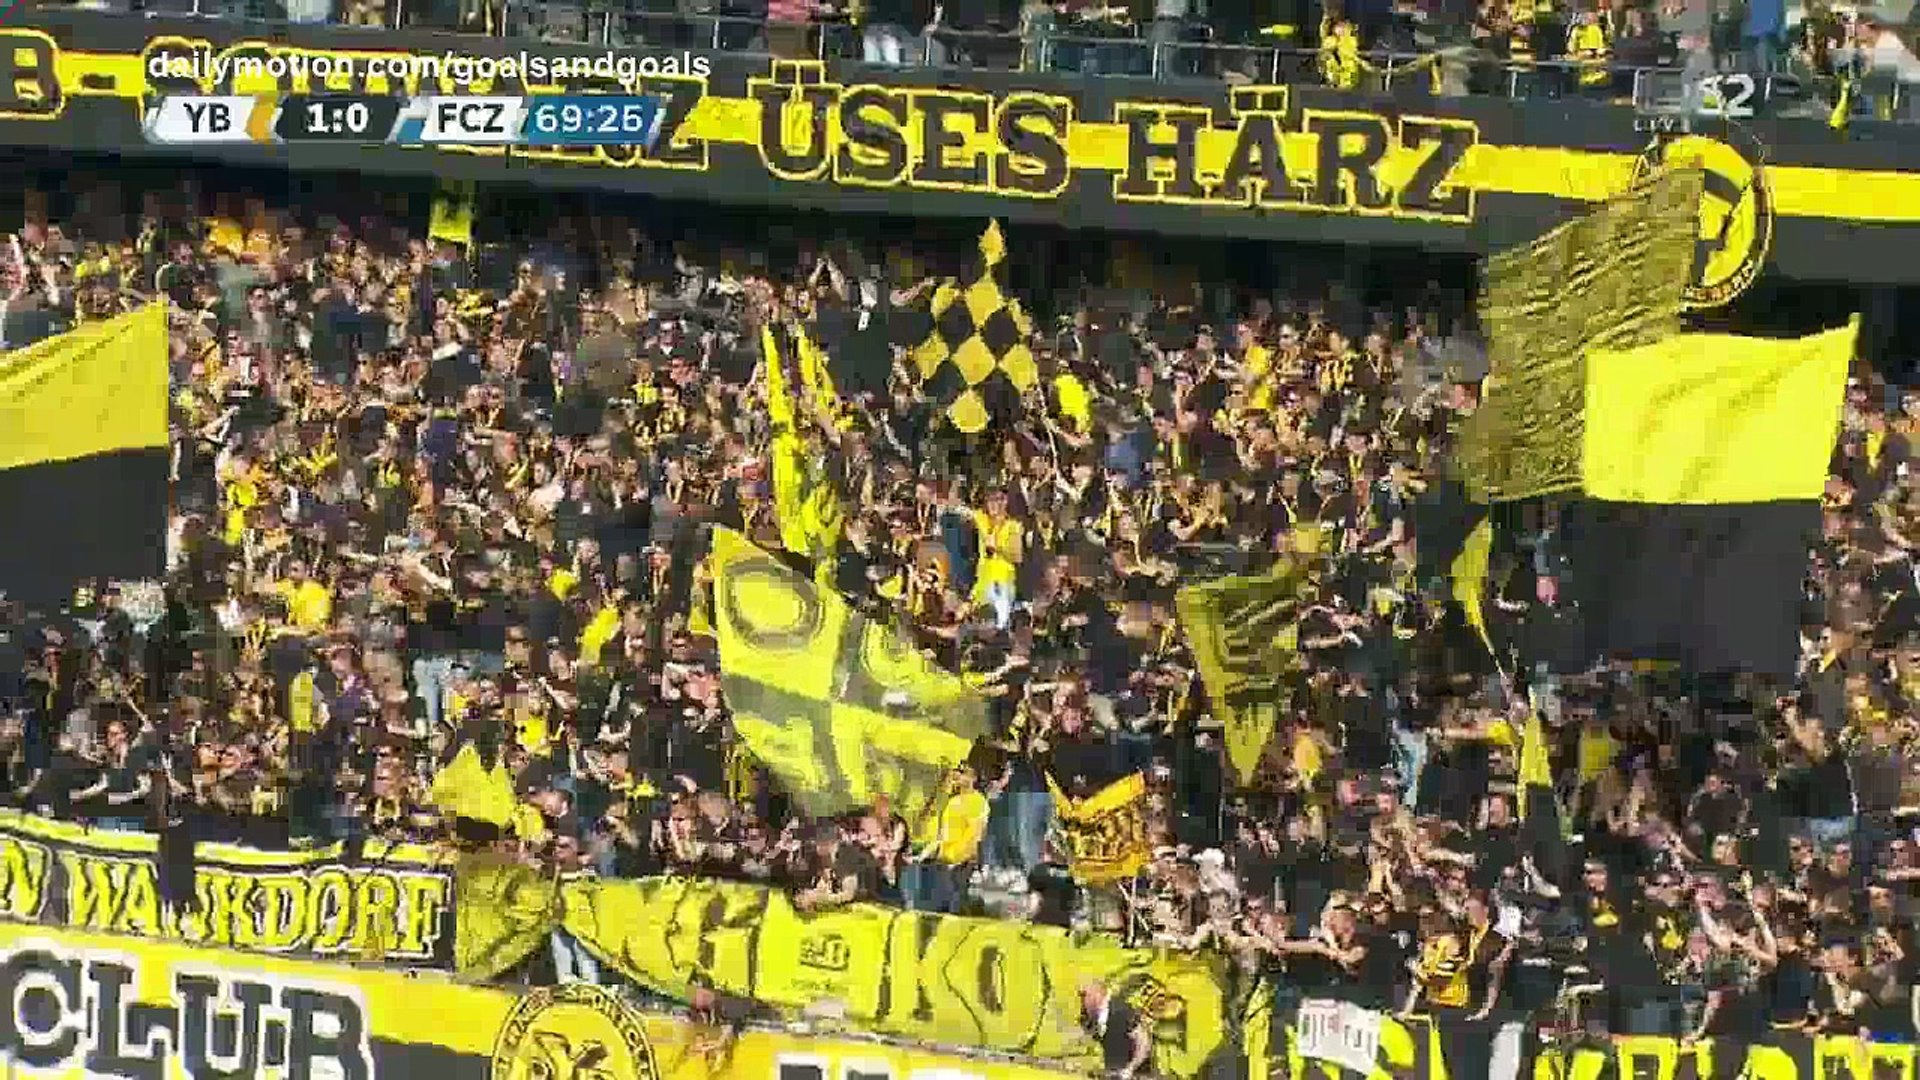 Sekou Sanogo Junior Goal HD - Young Boys 1 - 0 FC Zurich - 15.04.2018 (Full Replay)